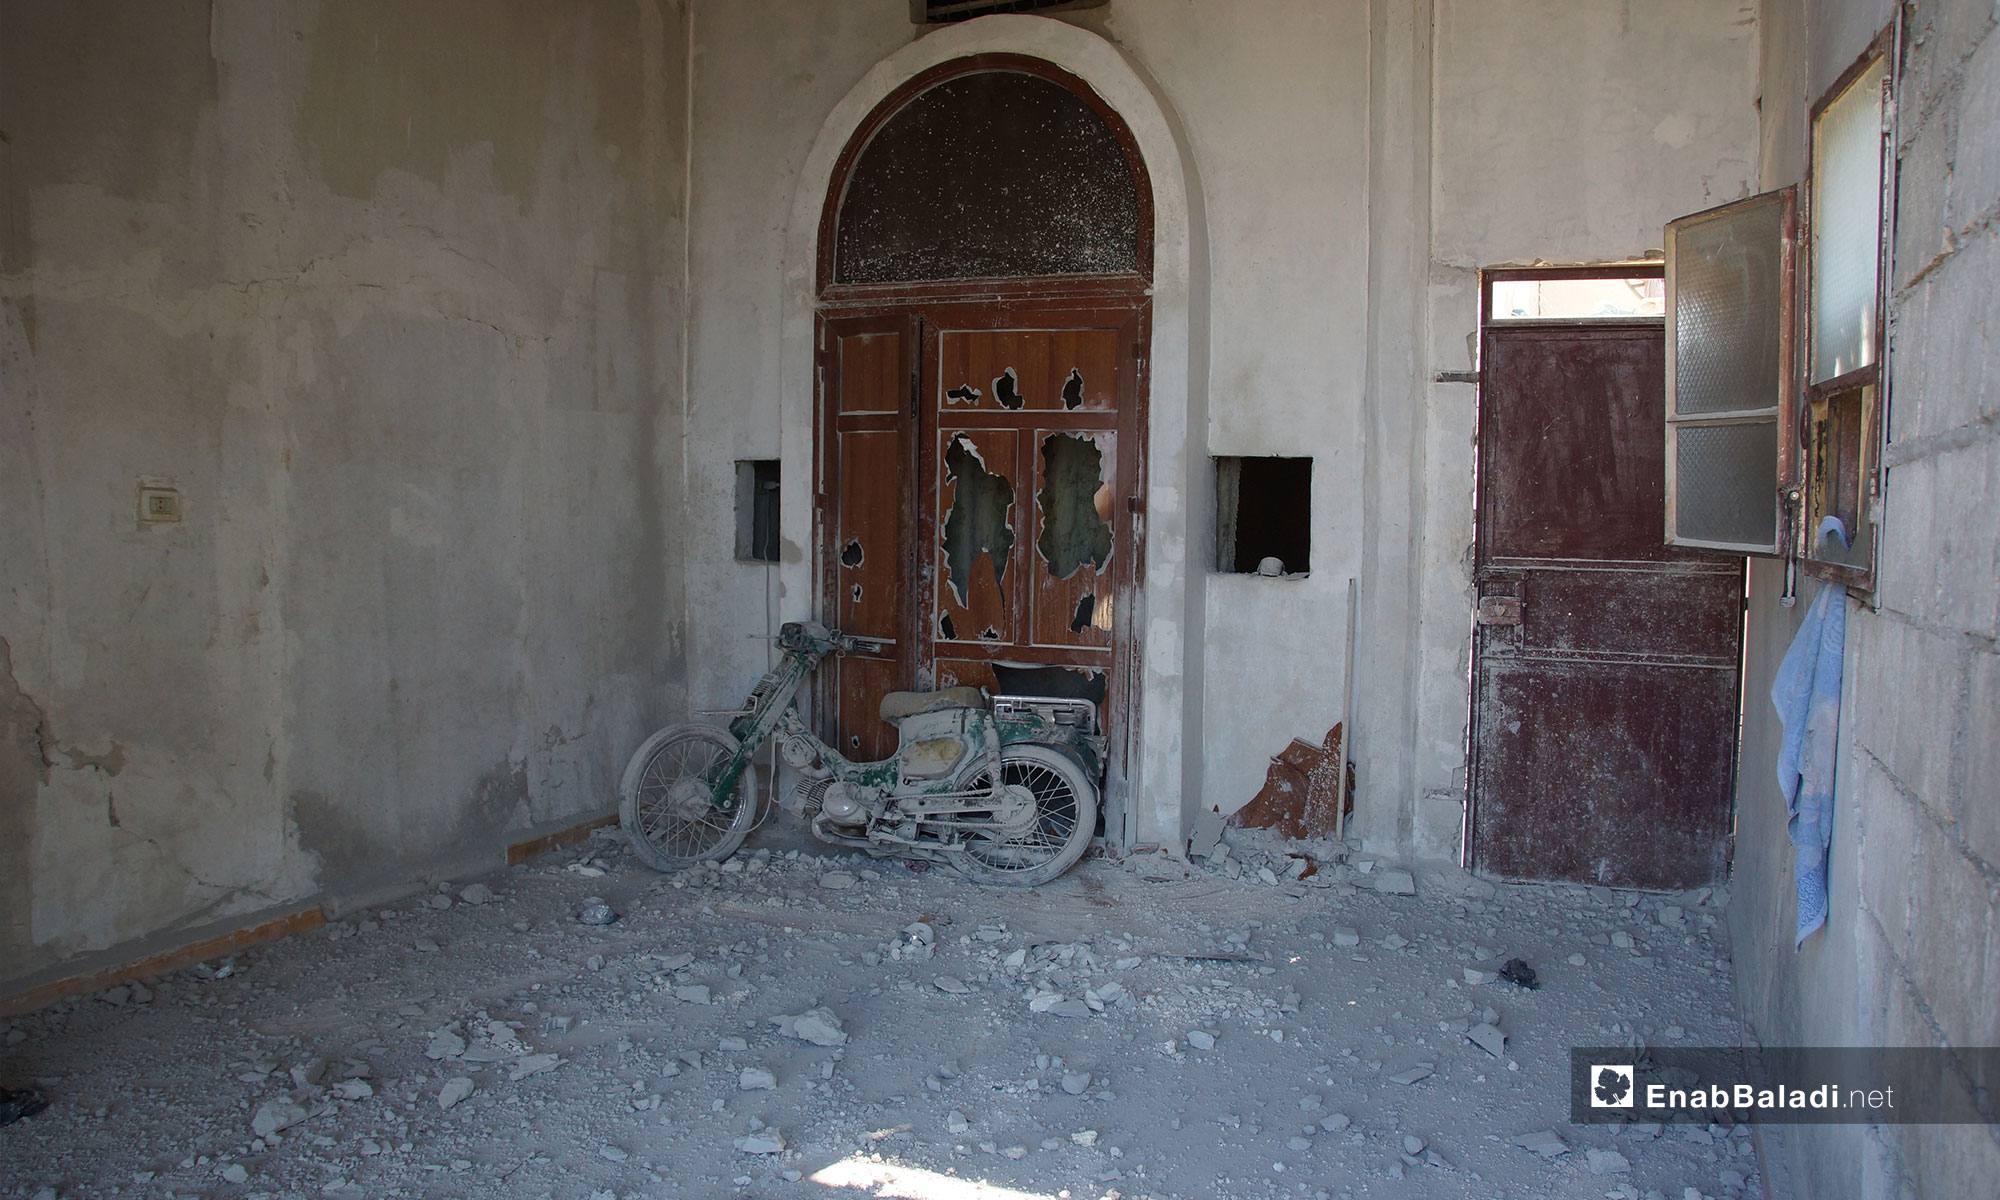 The rubble caused by the bombardment of Qalaat al-Madiq town, rural Hama – September 9, 2018 (Enab Baladi)